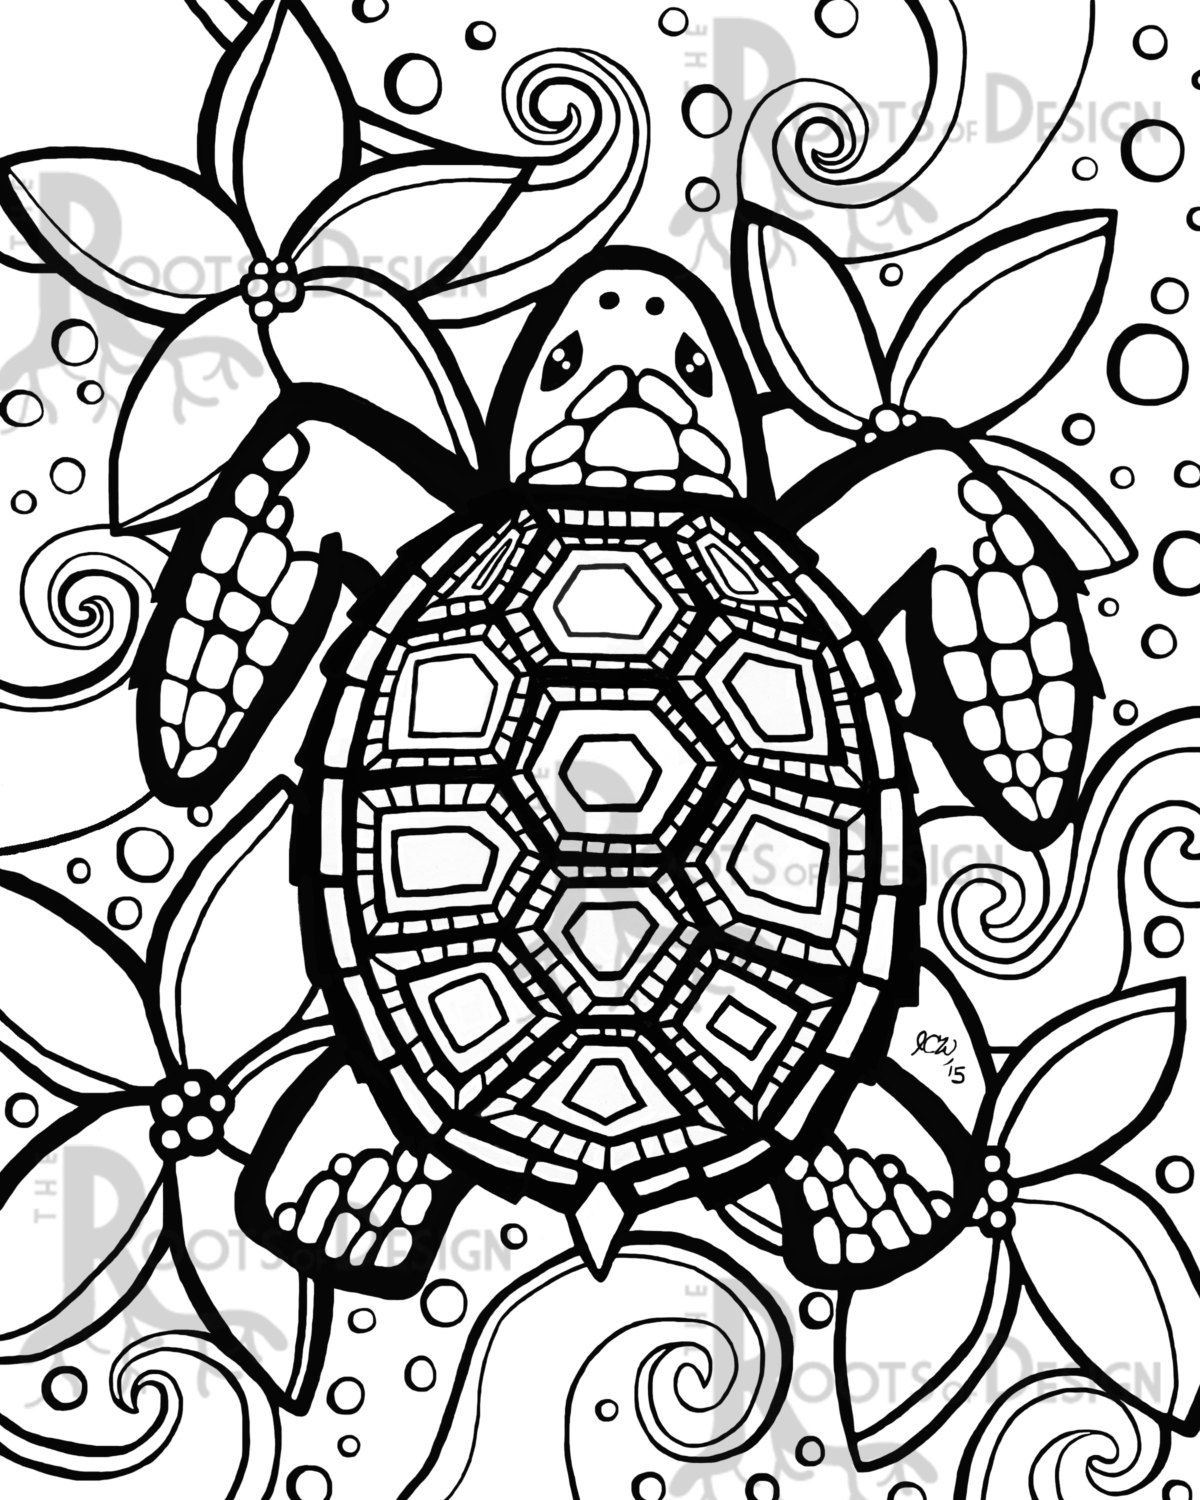 Disney zentangle coloring pages - Turtle Coloring Pages Google Search